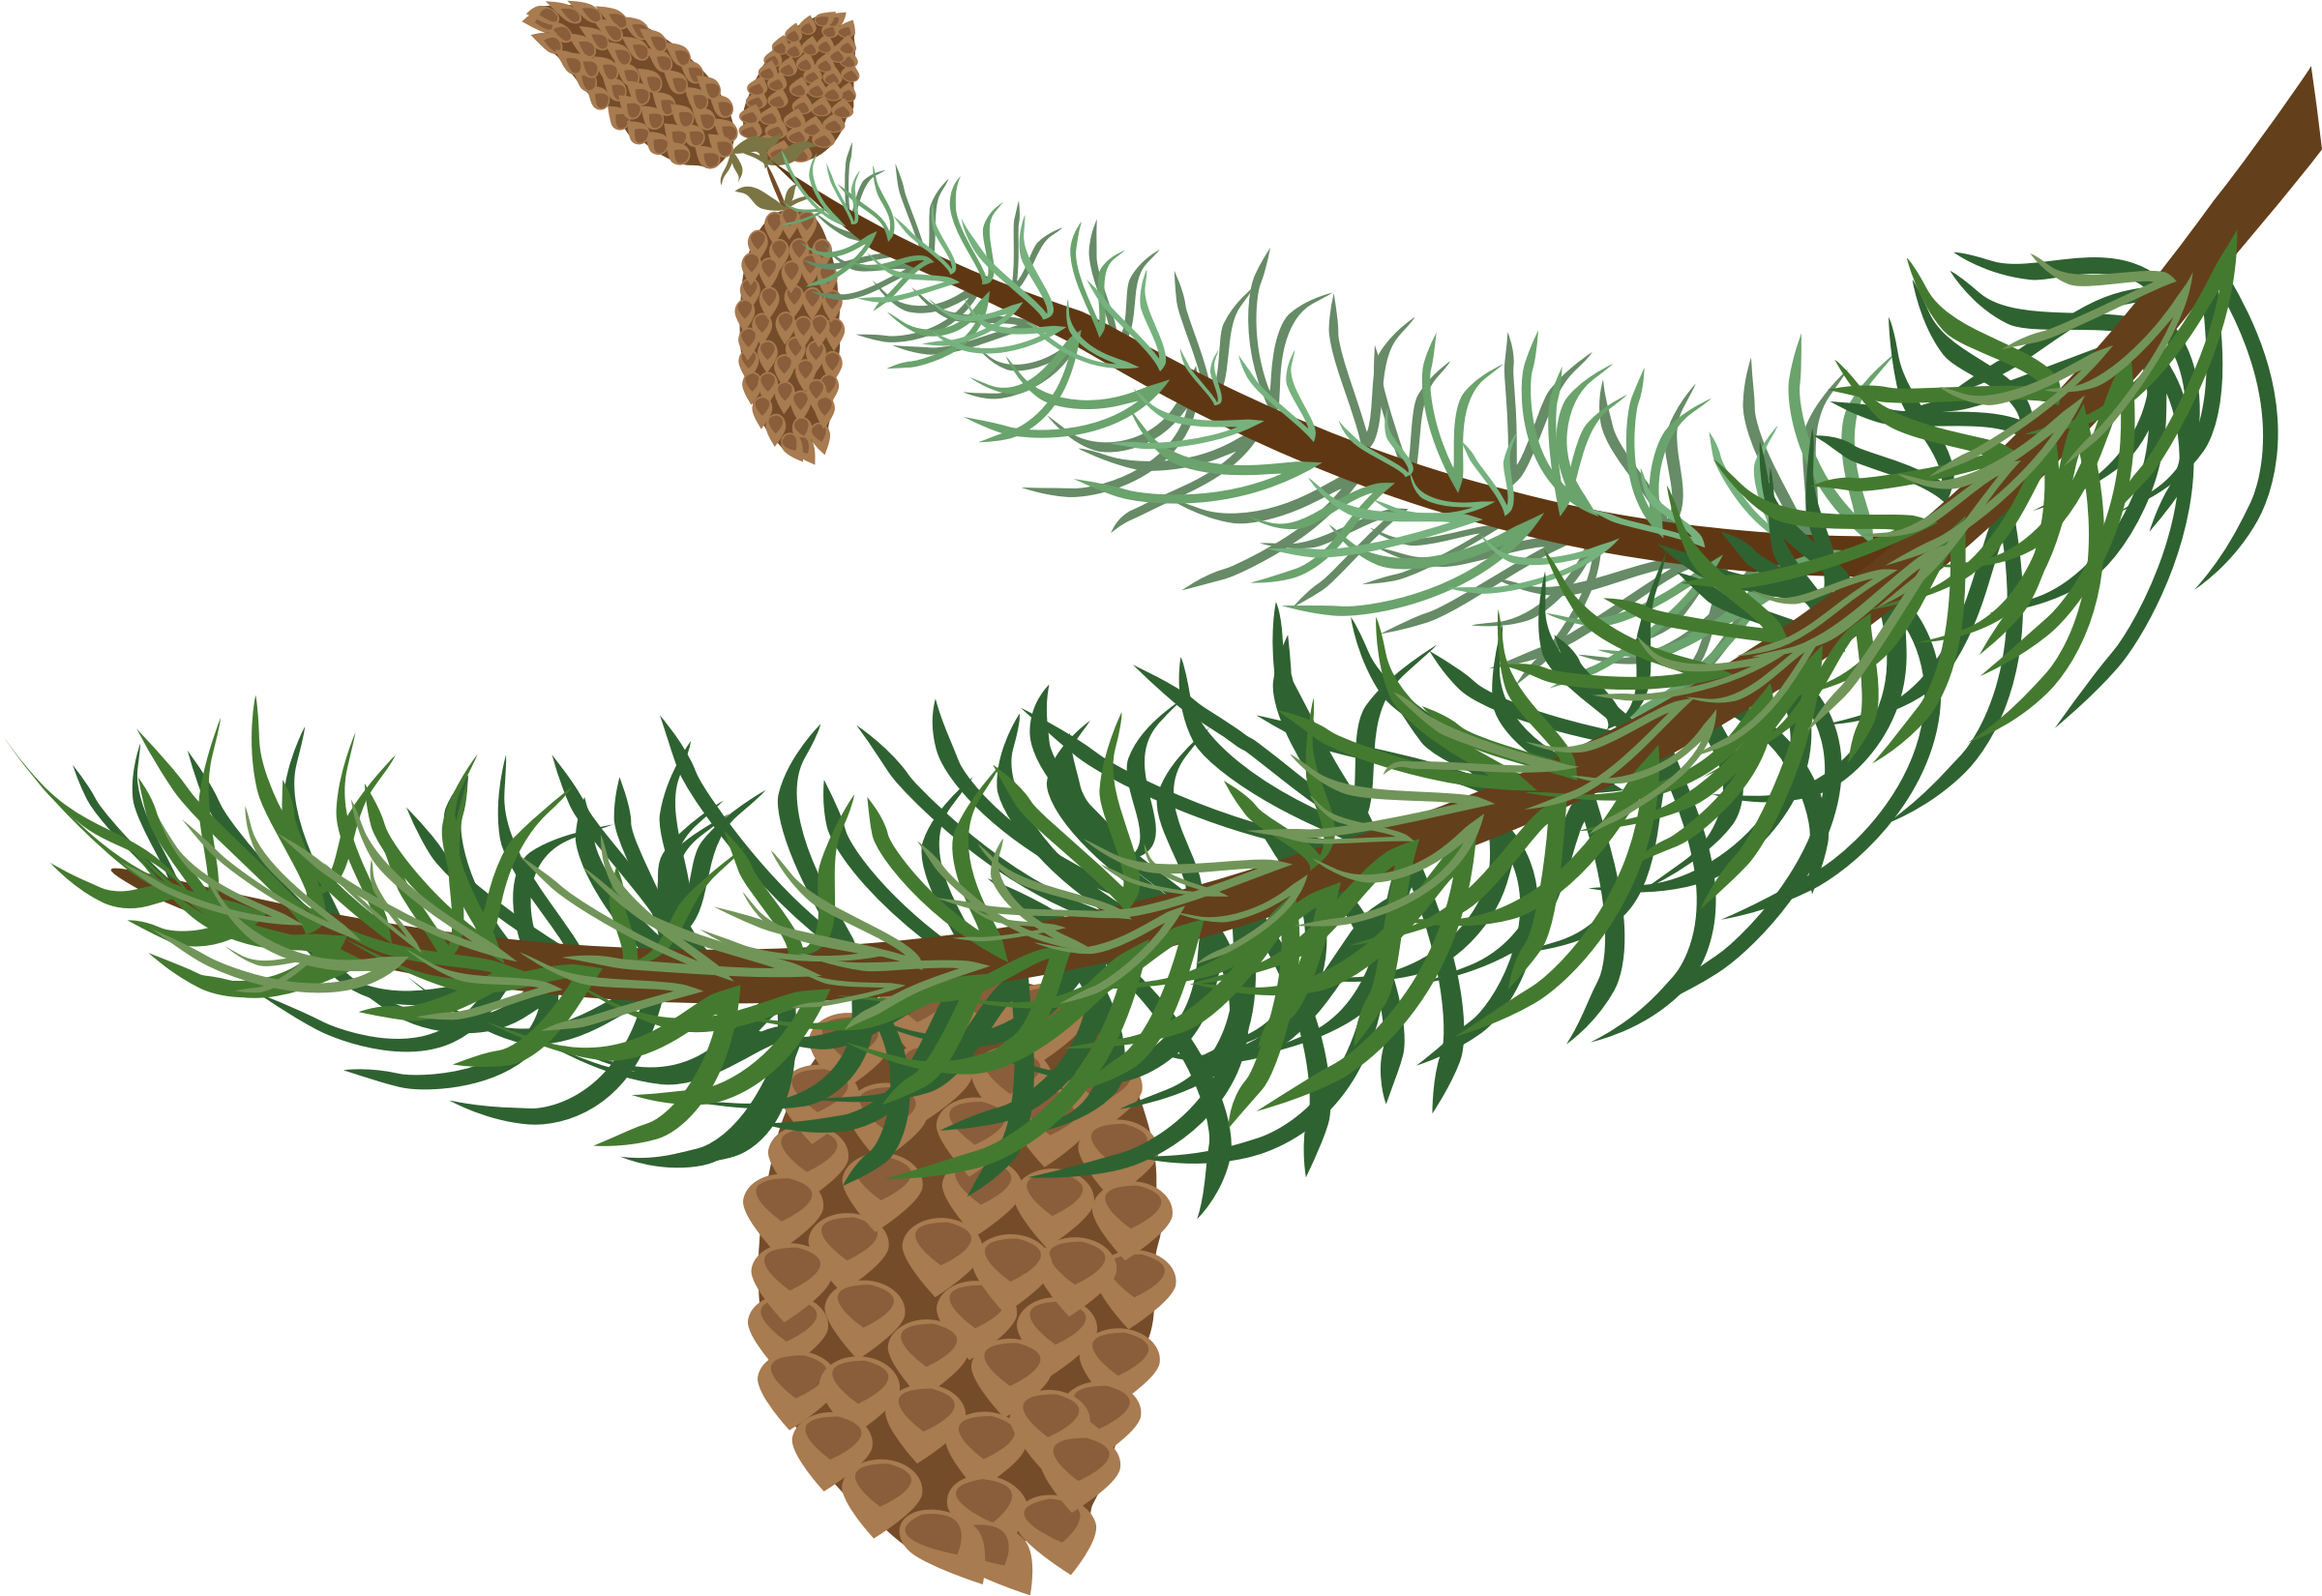 fir branch with cones by OlKu